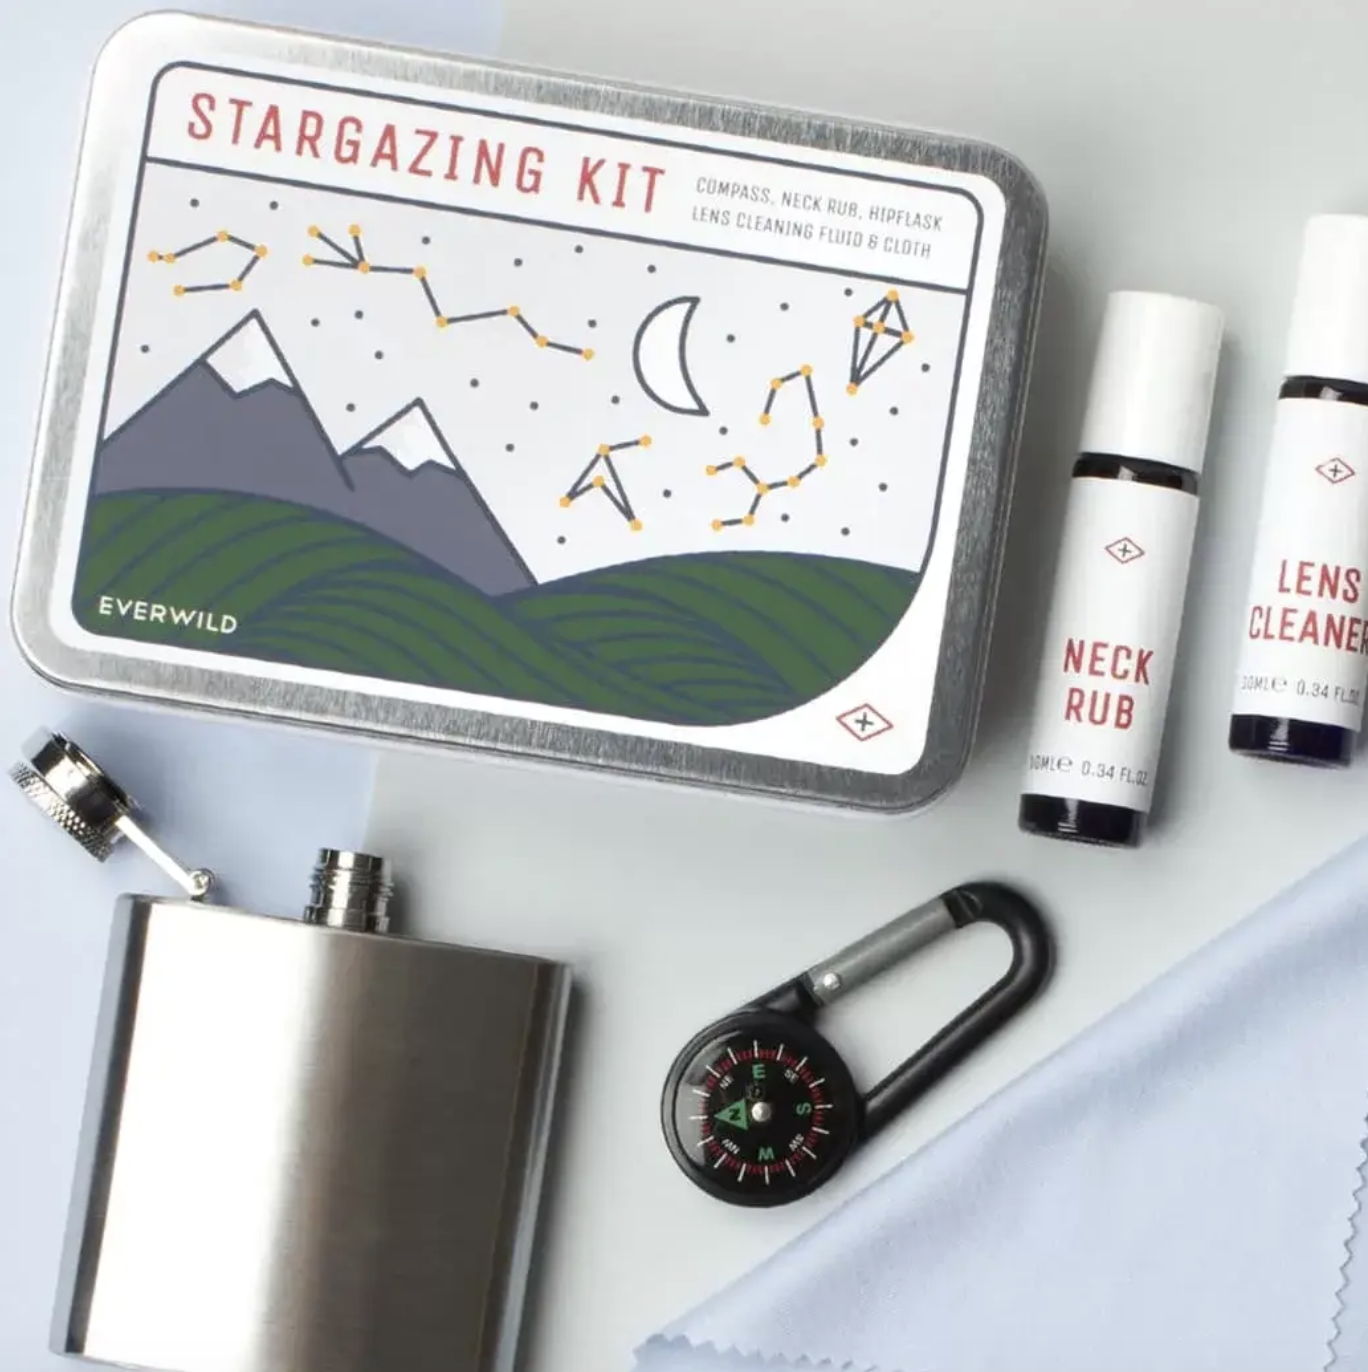 The stargazing kit.